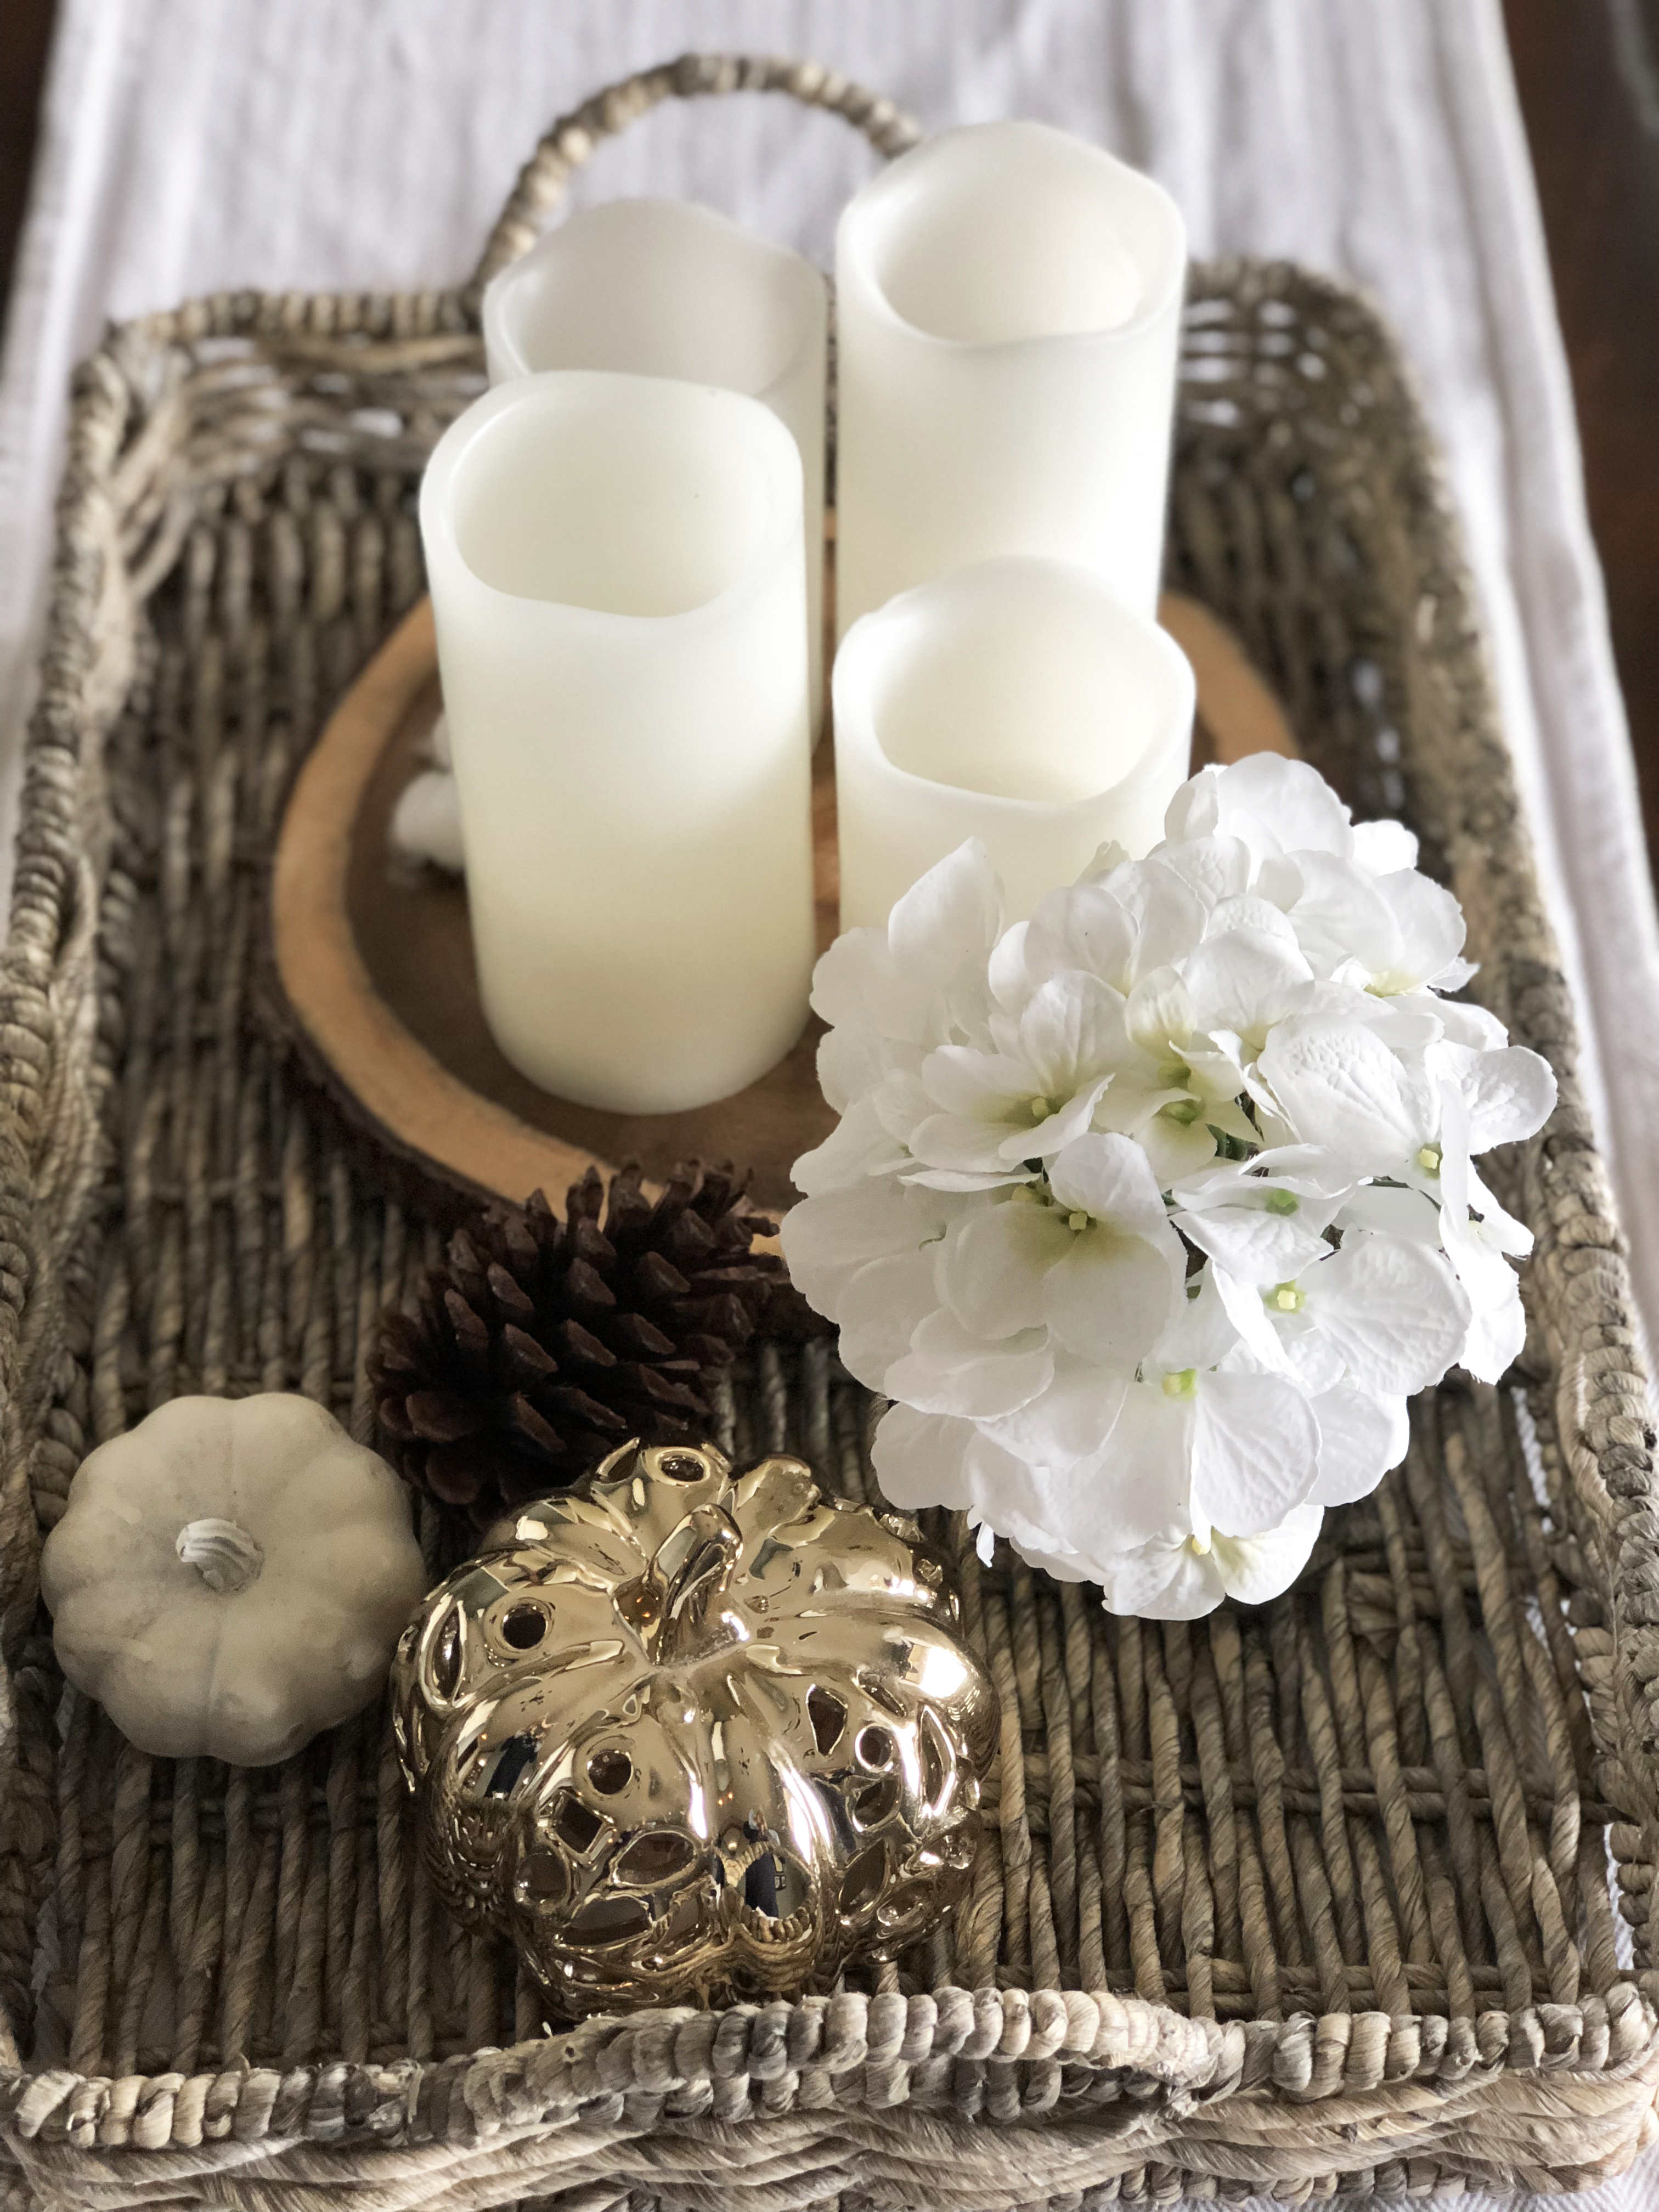 Fall Woven Tray with White and Gold pumpkins and pillar candles white hydrangeas